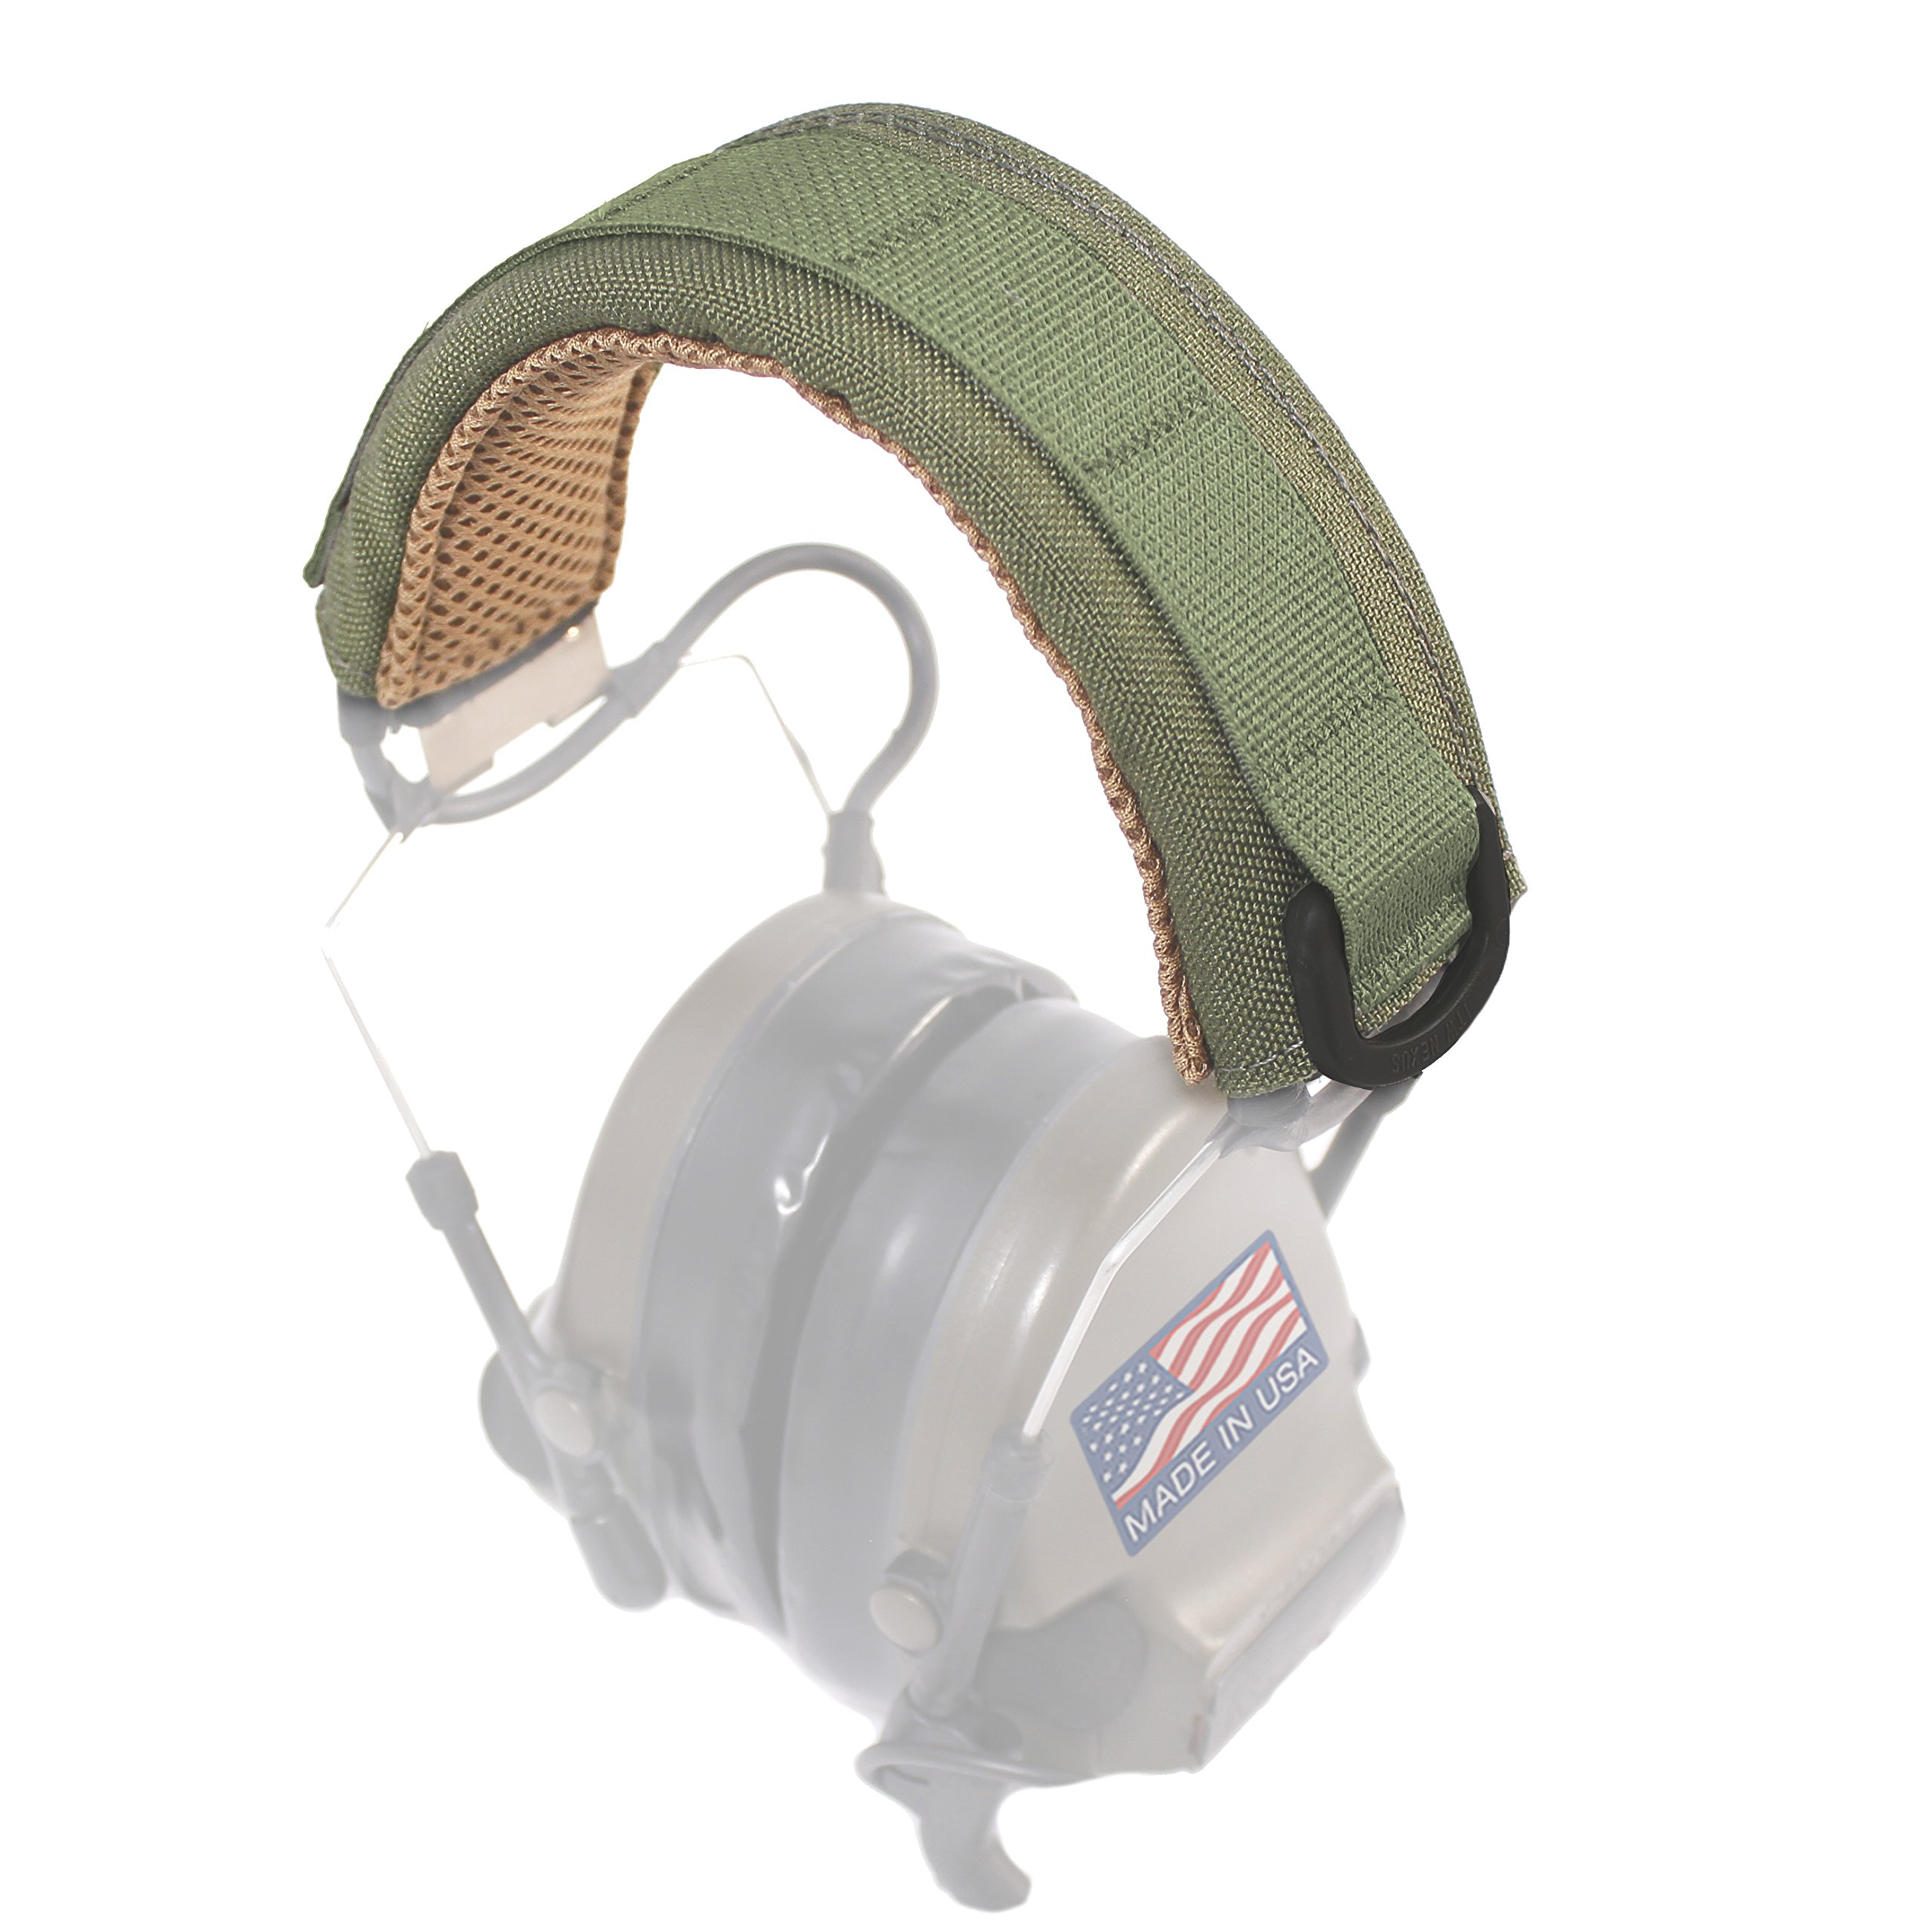 U.S. Tactical Sewing USTS Advanced Modular Headset Cover (Olive Drab) by U.S. Tactical Sewing